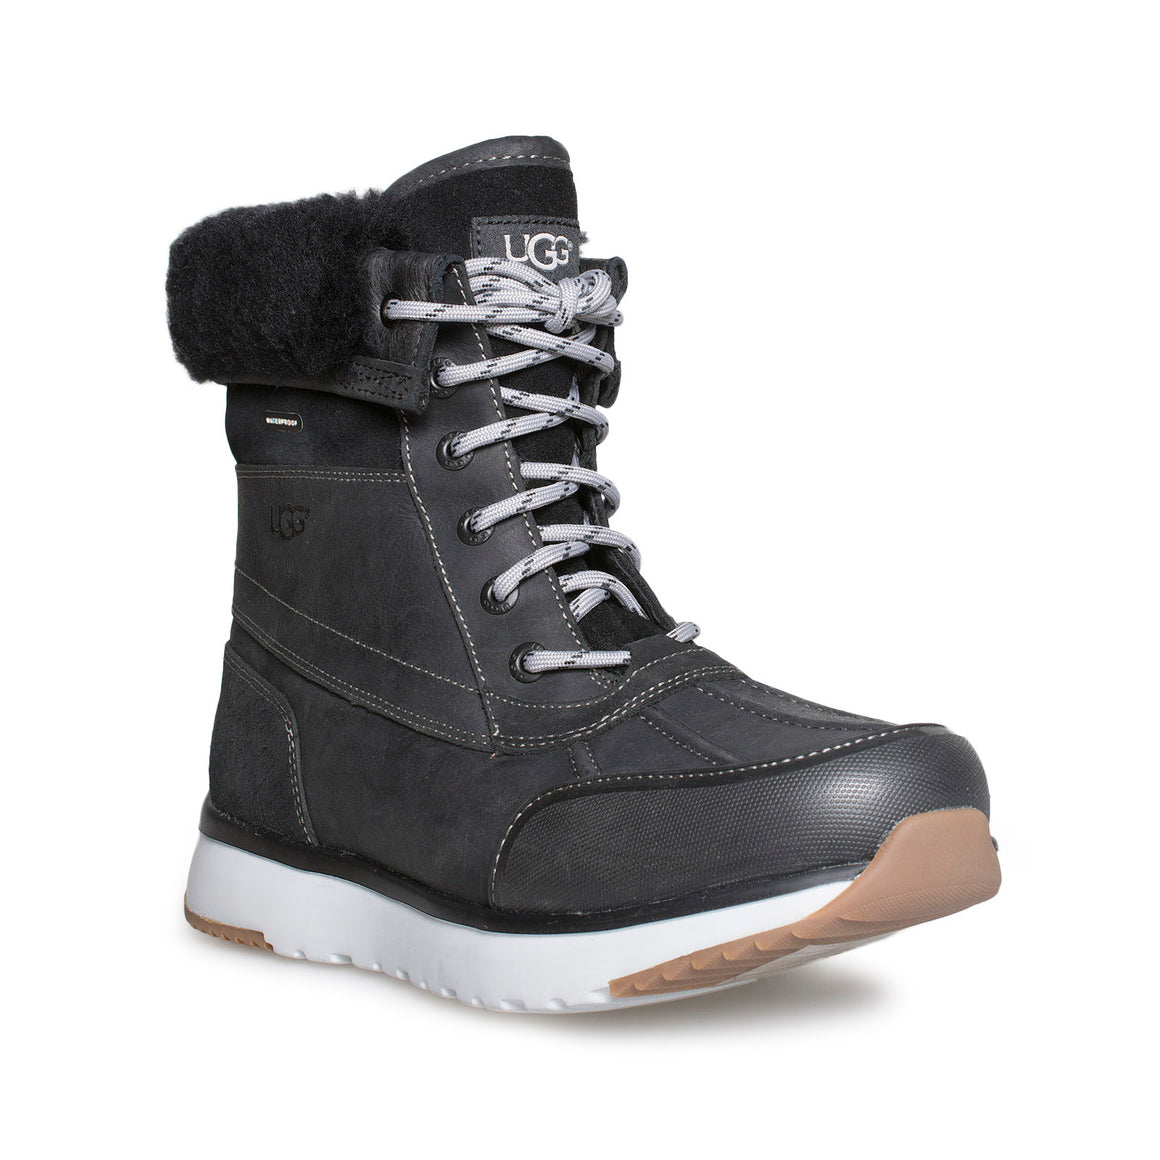 UGG Eliasson Black Boots - Men's